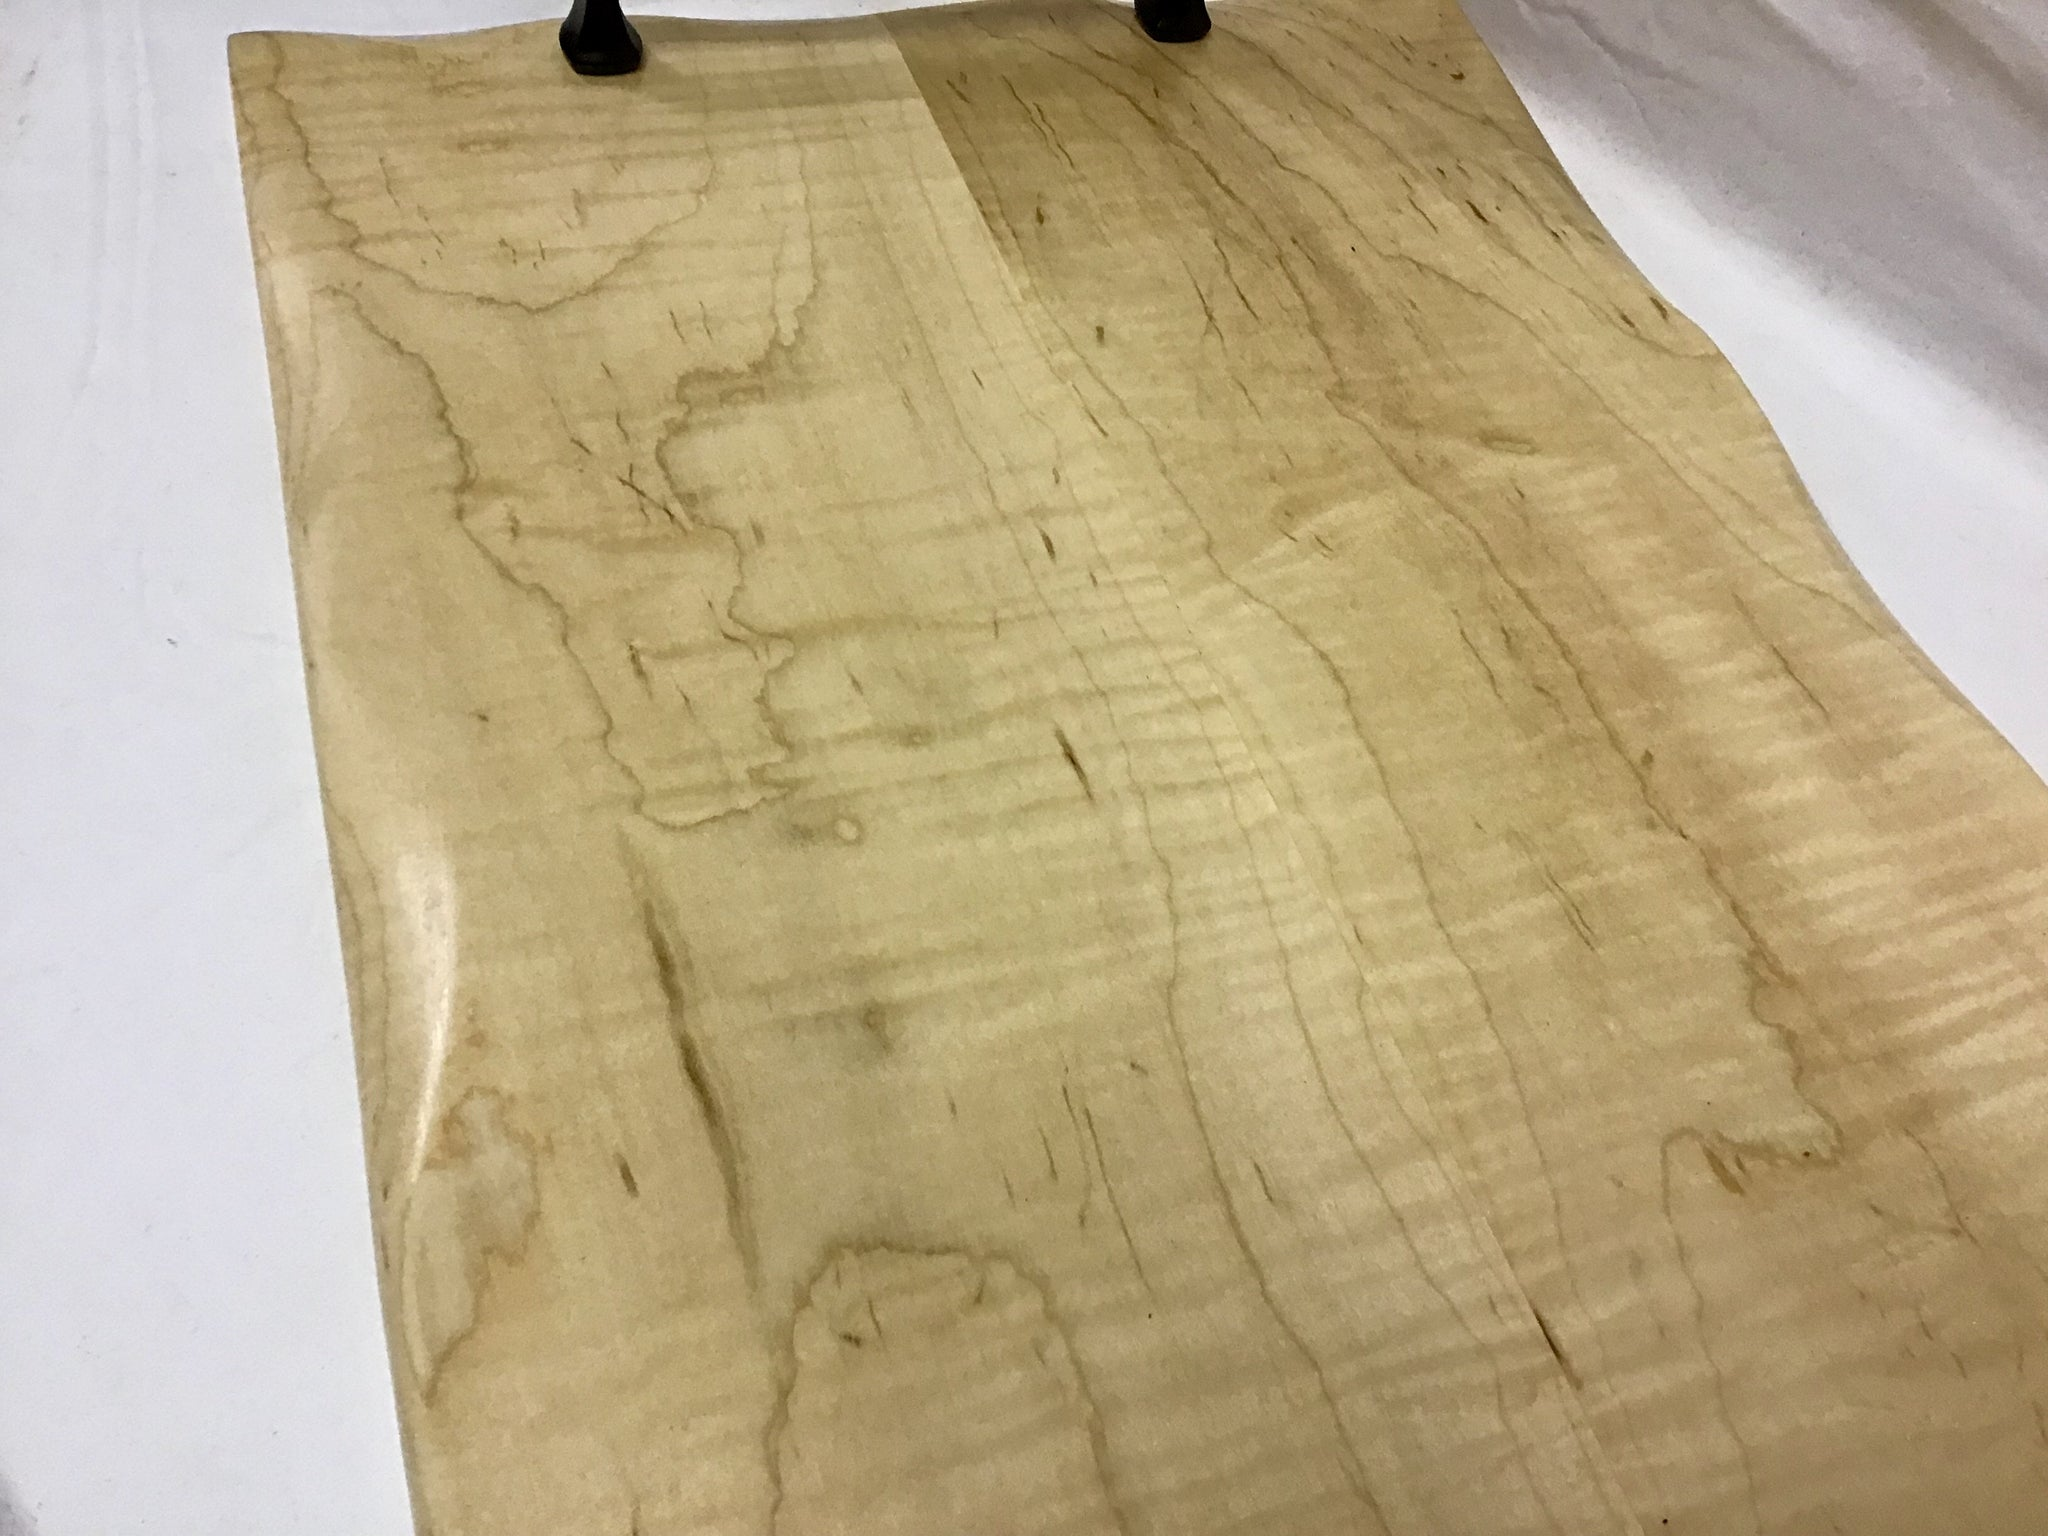 Charcuterie Board-Maple w/waned edge